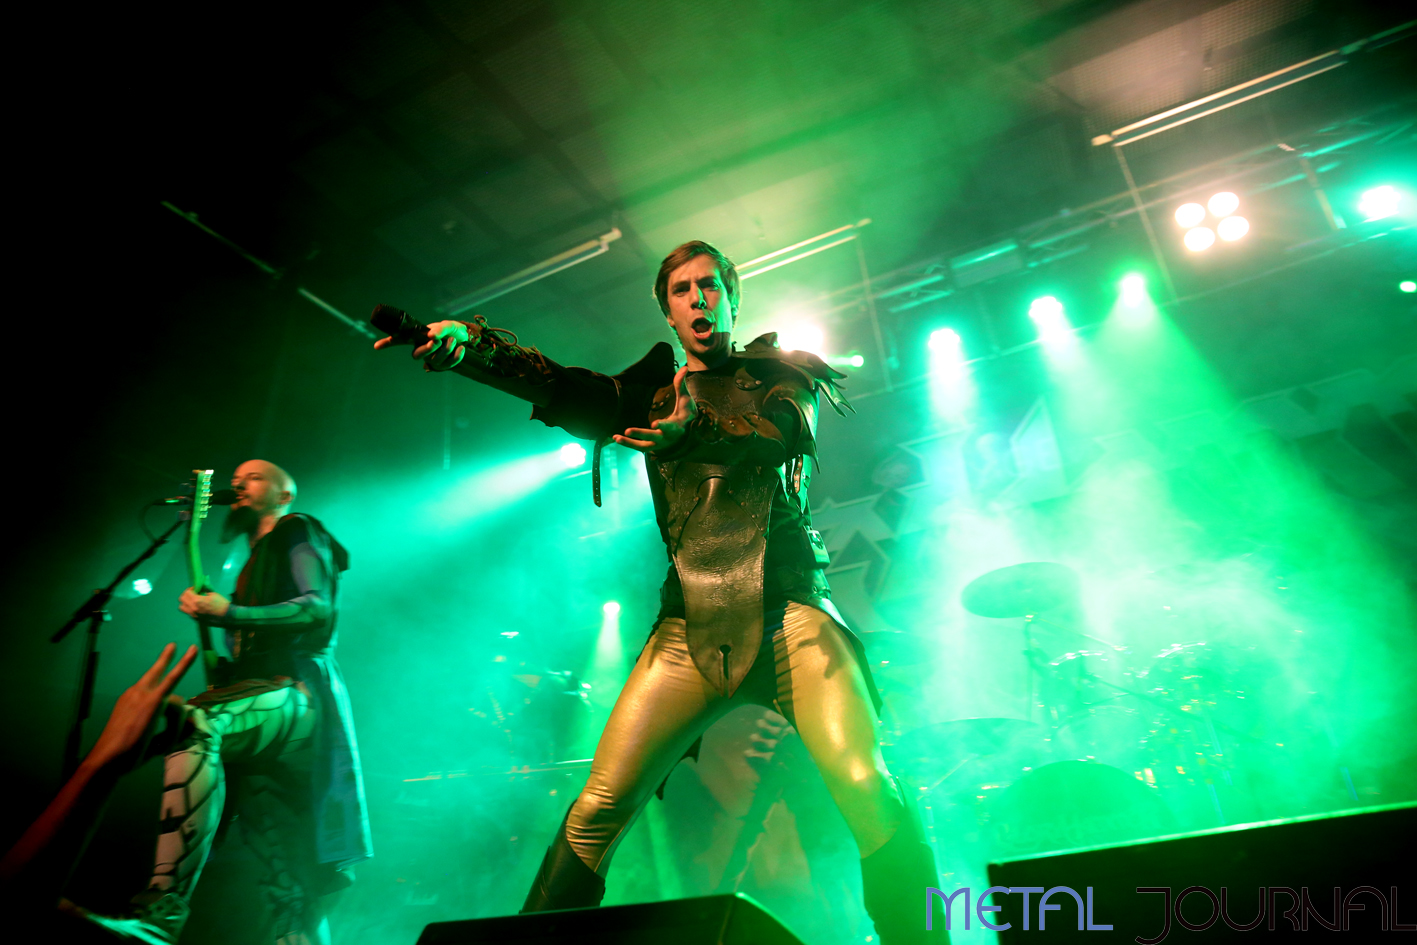 gloryhammer - metal journal 2018 pic 5